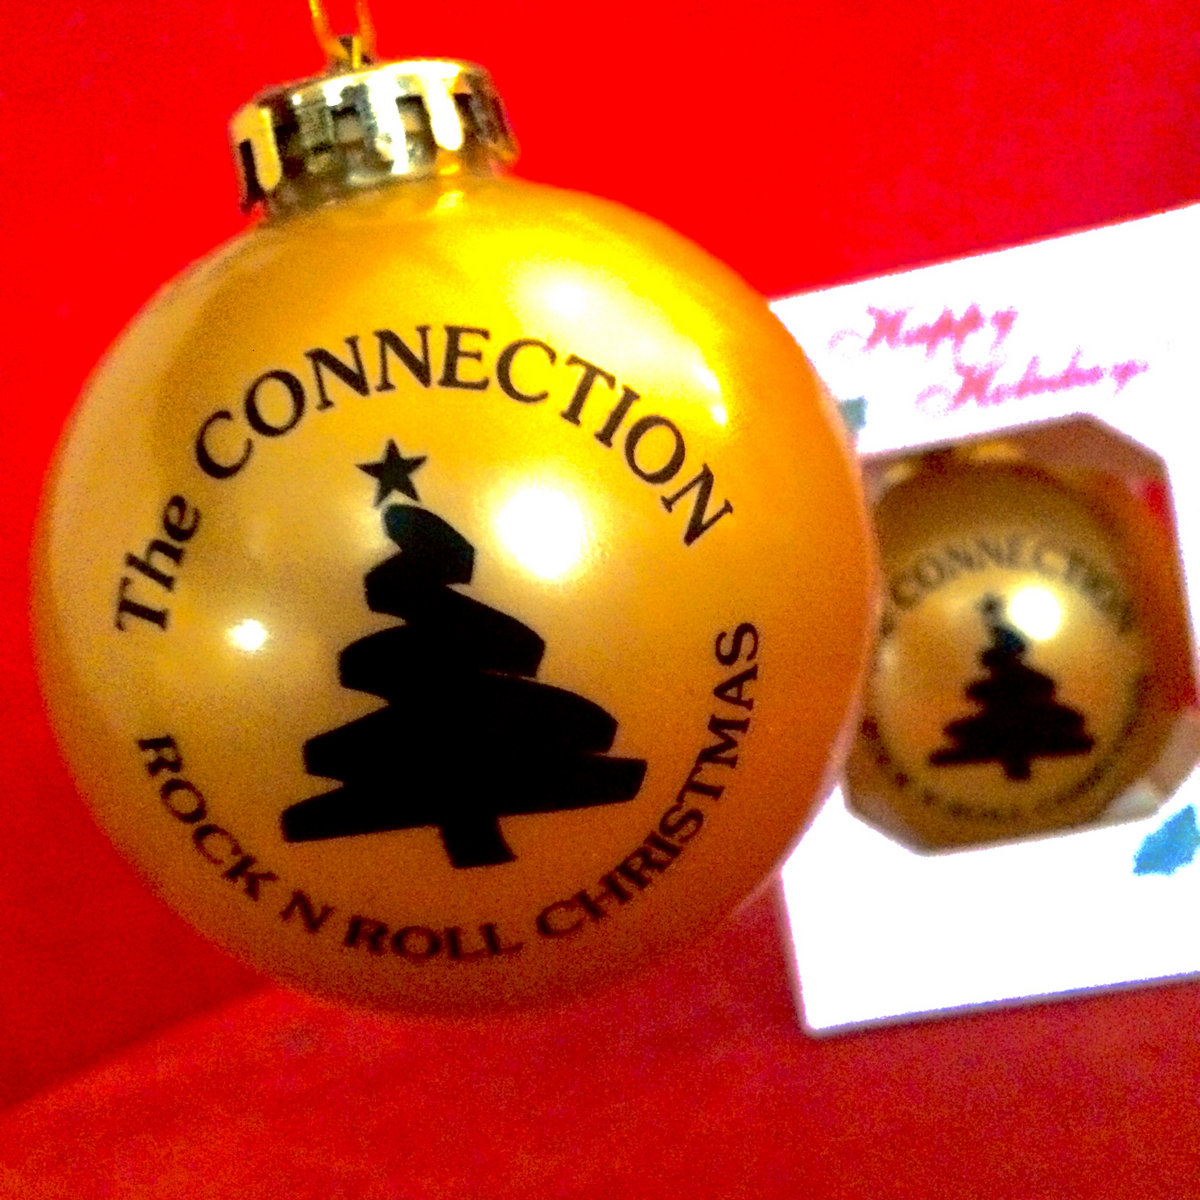 the connection rock n roll christmas tree ornament these christmas ornaments are proudly manufactured and printed in the usa constructed of durable